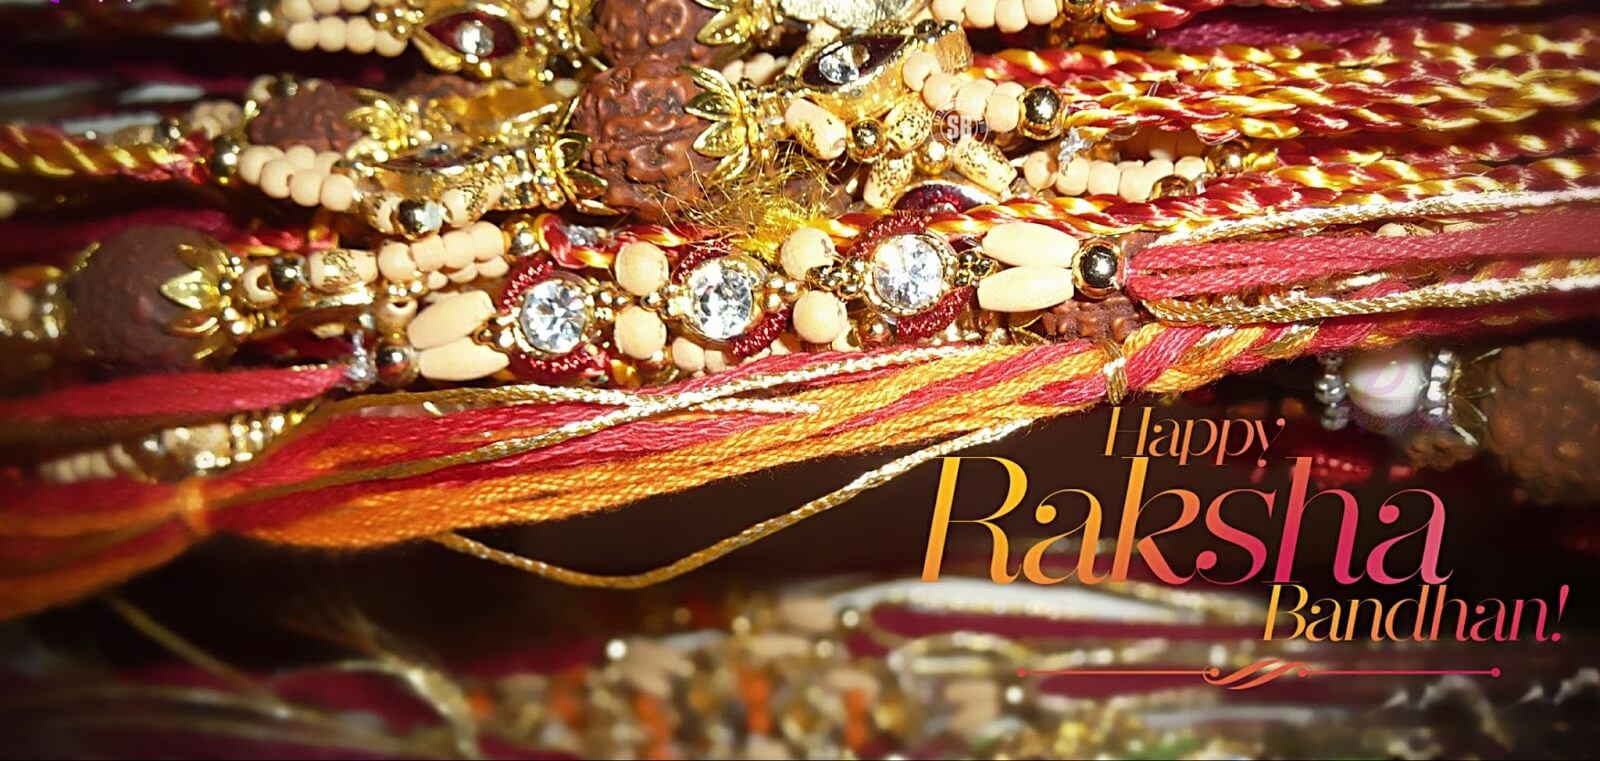 Happy Raksha Bandhan 2017 Facebook whatsapp images wallpapers